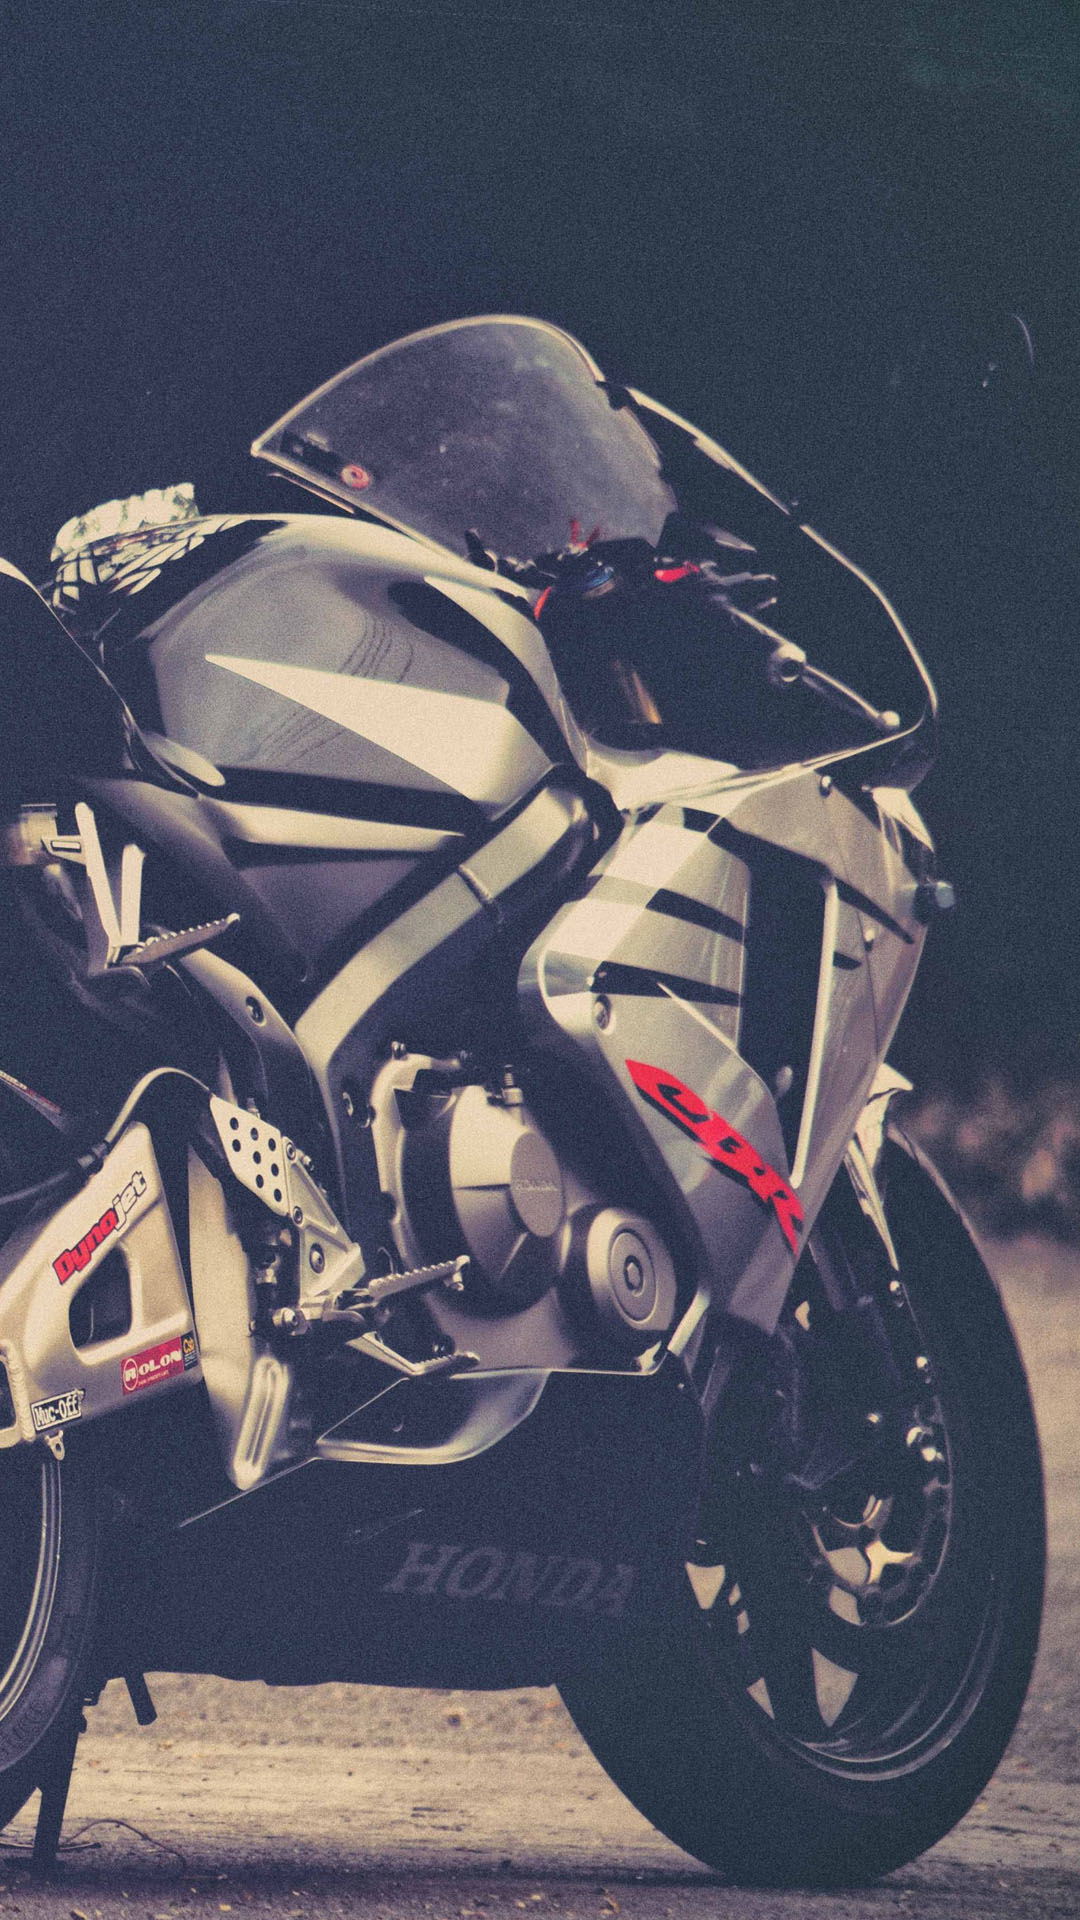 Honda Cbr 600 Iphone 6 6 Plus And Iphone 5 4 Wallpapers